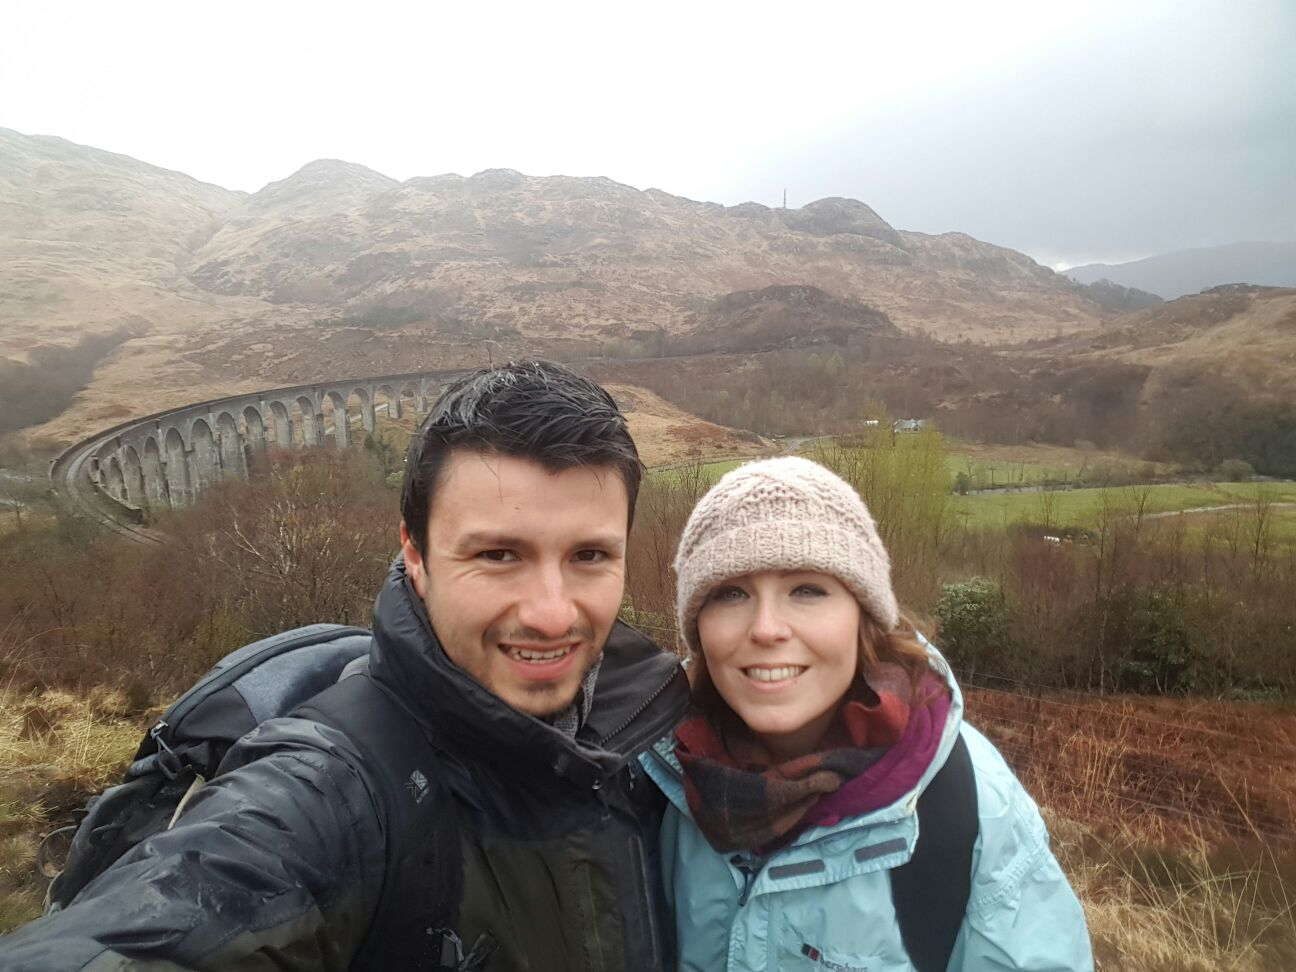 April at the Glenfinnan Viaduct, or Harry Potter bridge, in Scotland